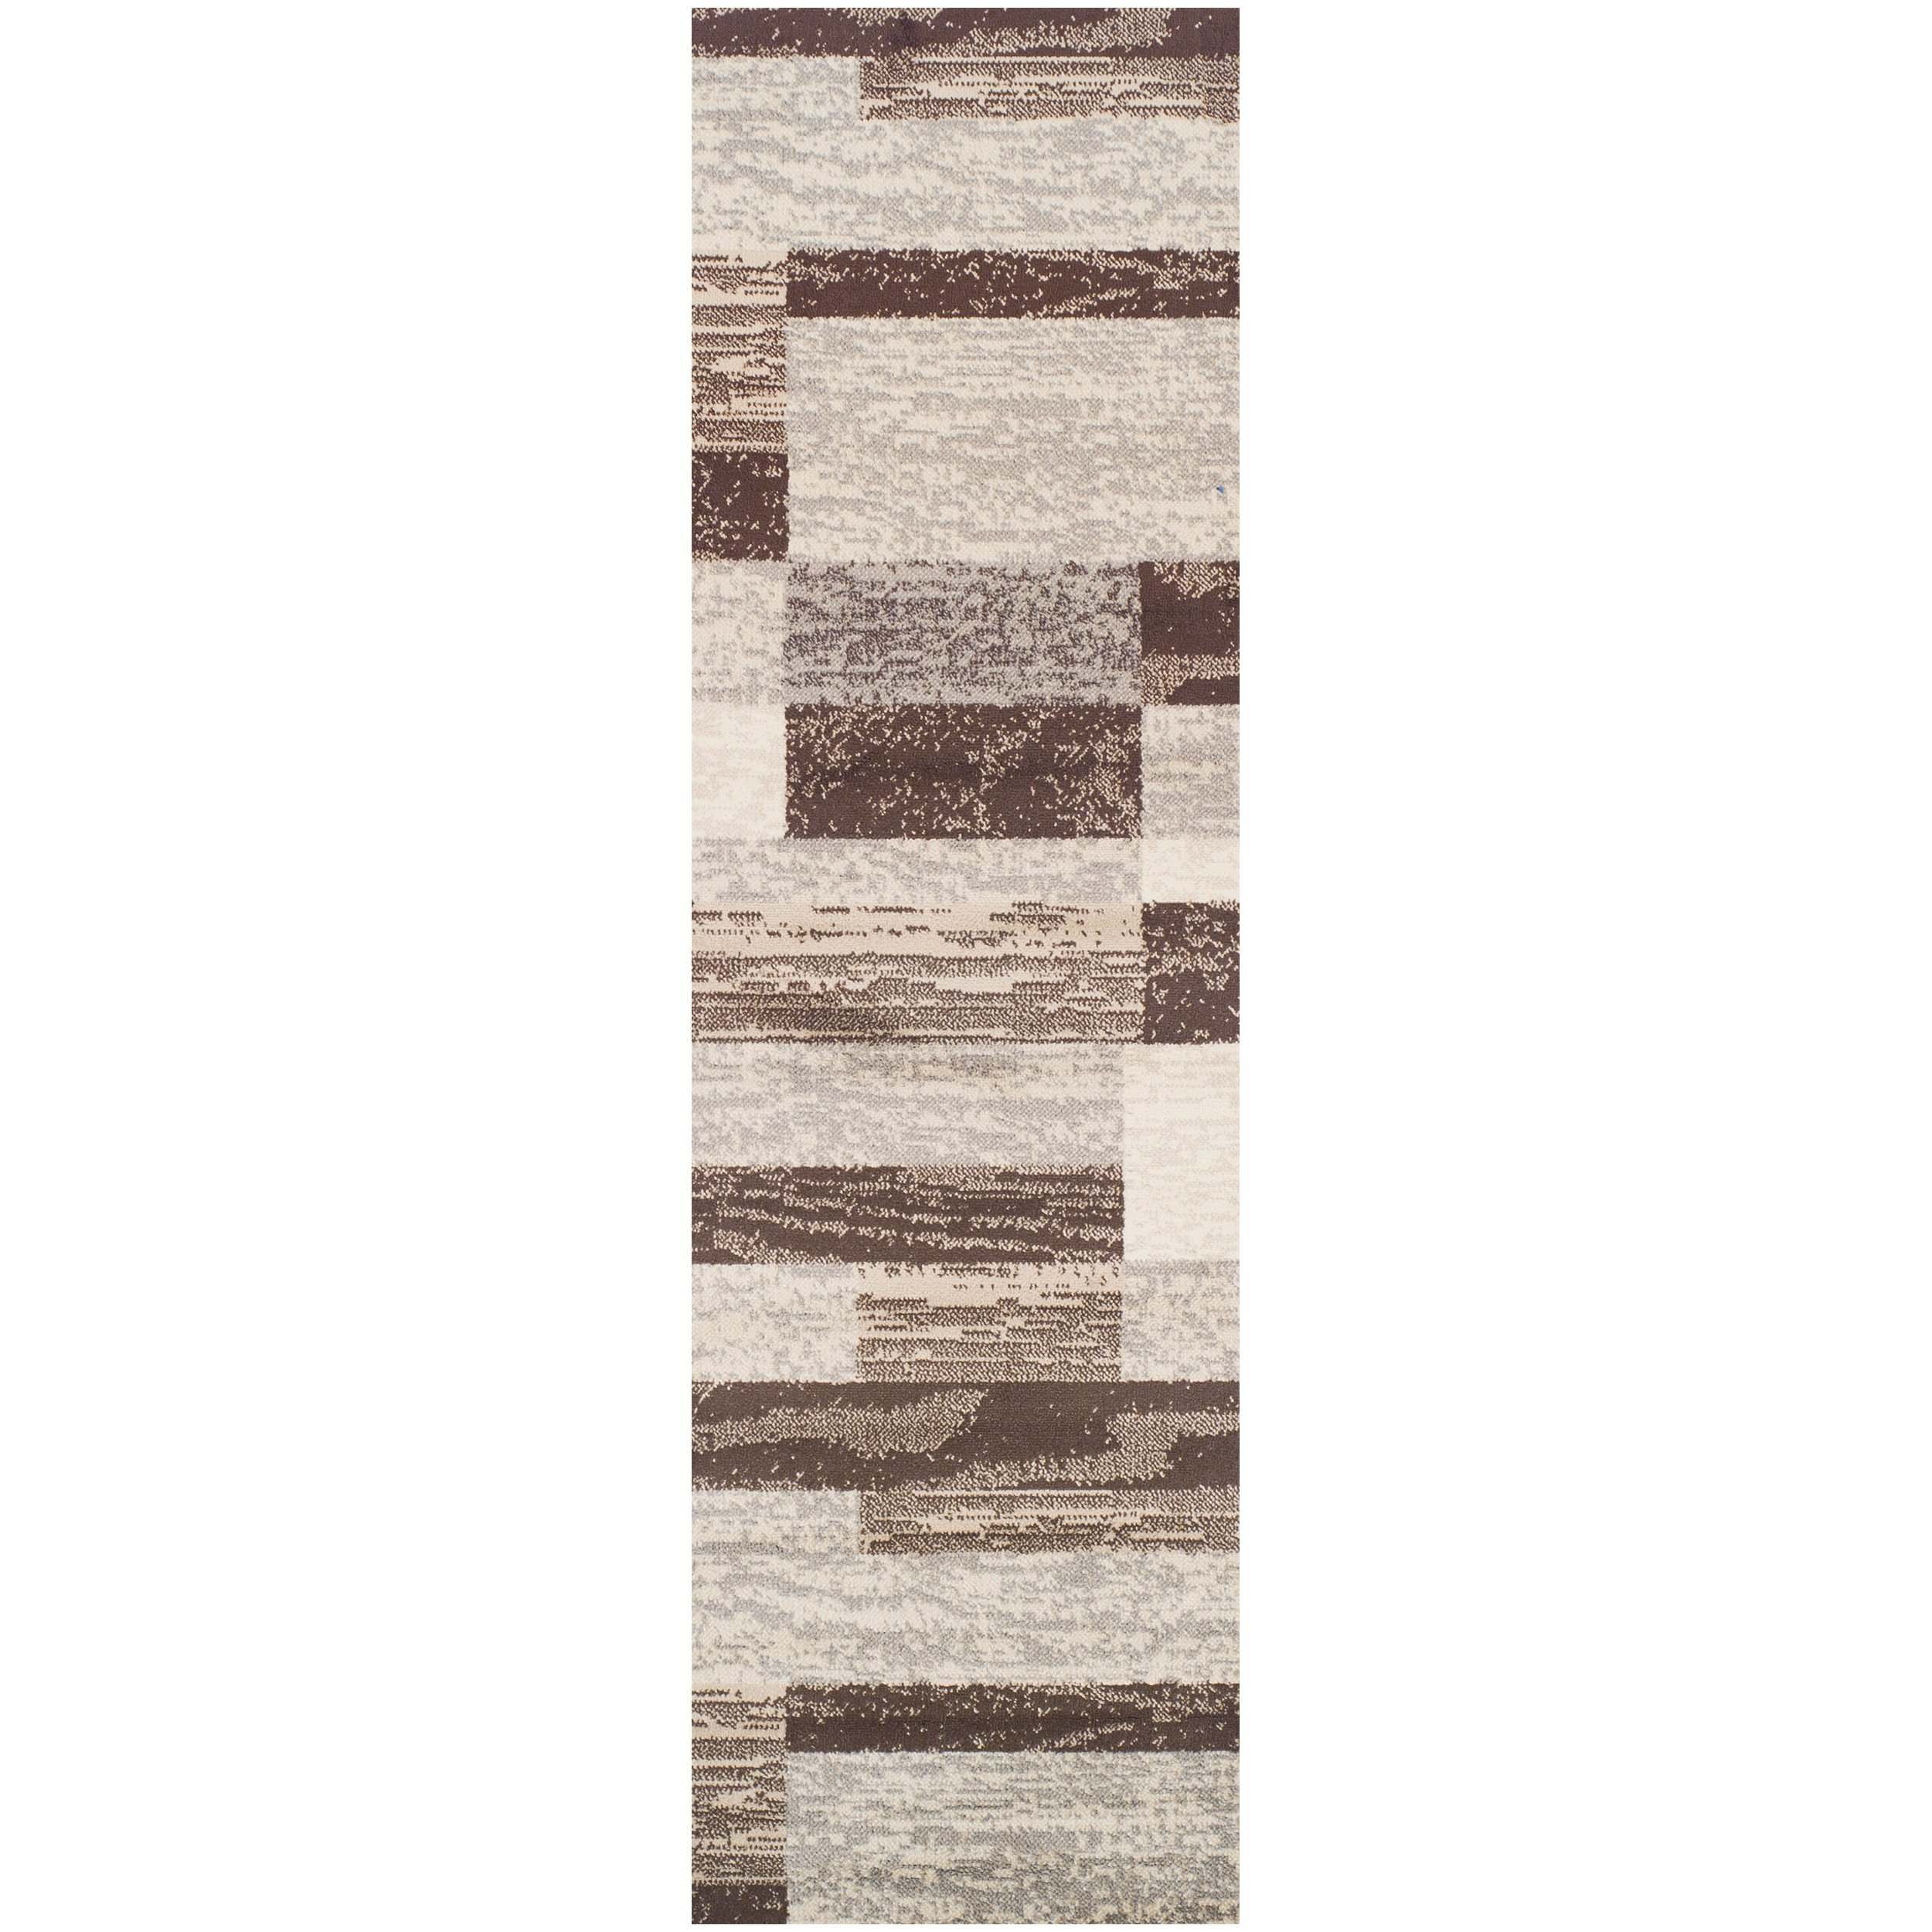 """Superior Modern Rockwood Collection Area Rug, 8mm Pile Height with Jute Backing, Textured Geometric Brick Design, Anti-Static, Water-Repellent Rugs - Slate, 2'7"""" x 8' Runner"""